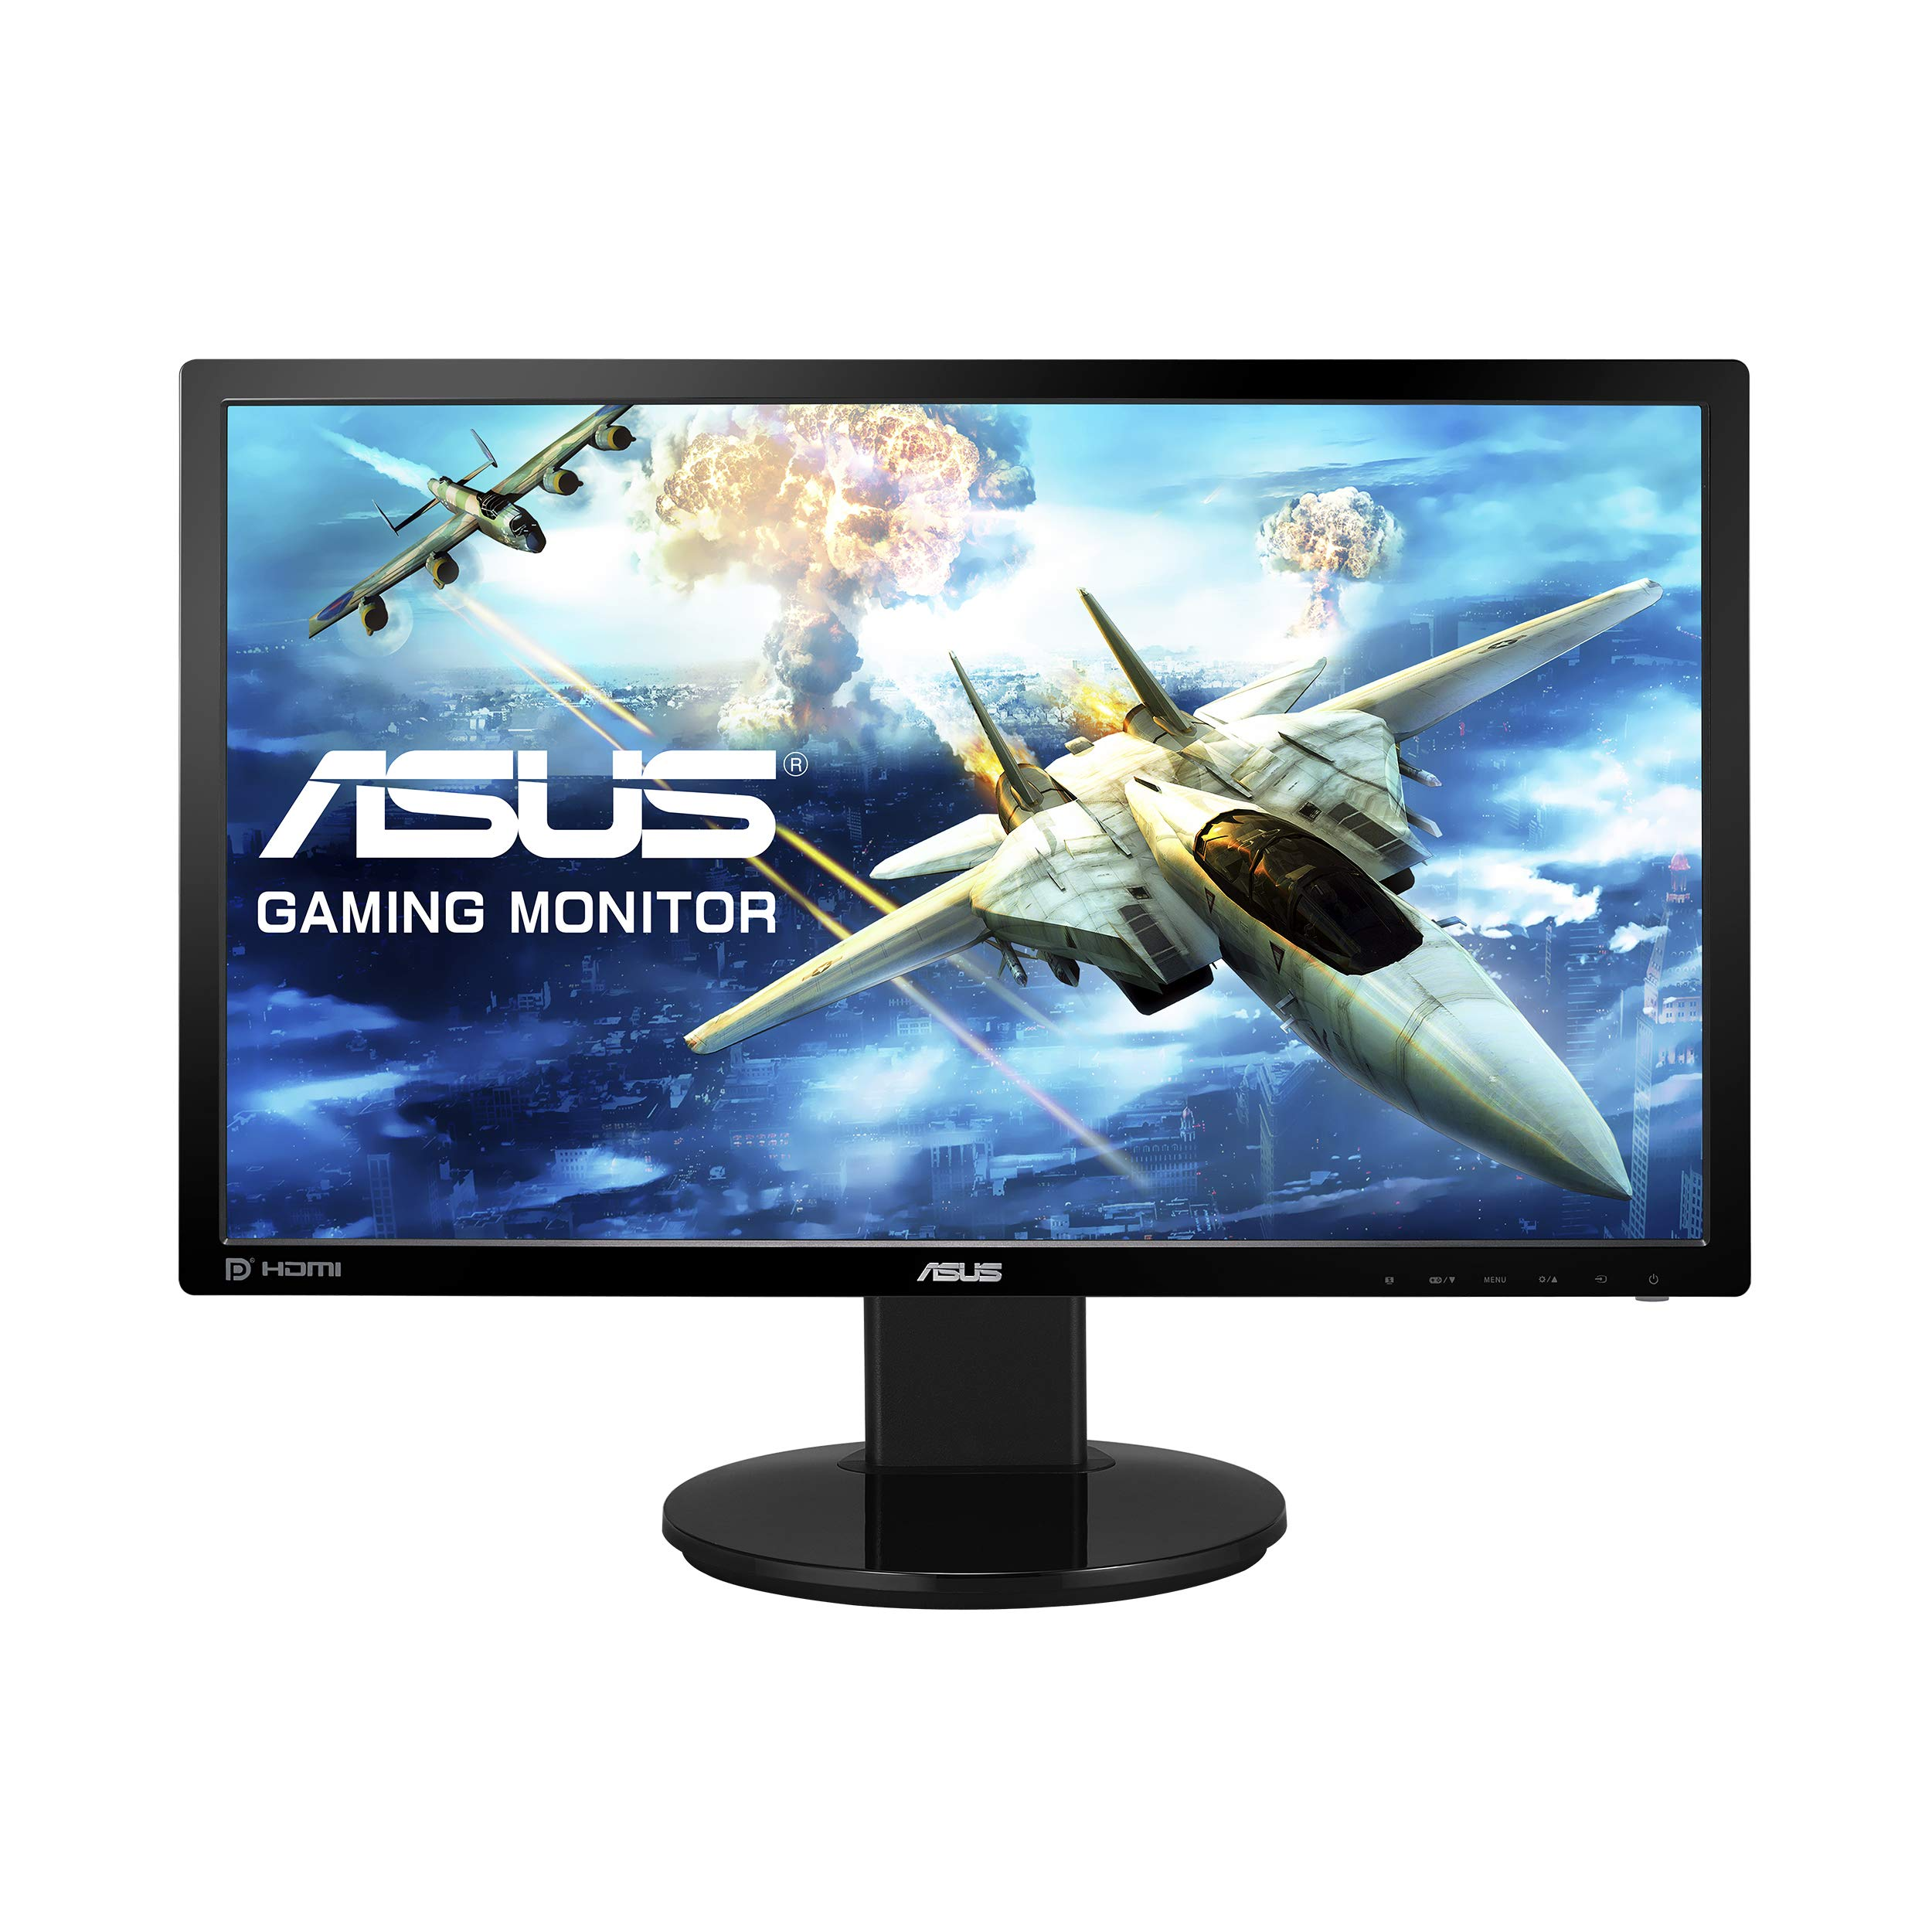 ASUS VG248QZ 24? Monitor para juegos 144Hz Full HD 1080p 1ms DP HDMI DVI Eye Care, Negro